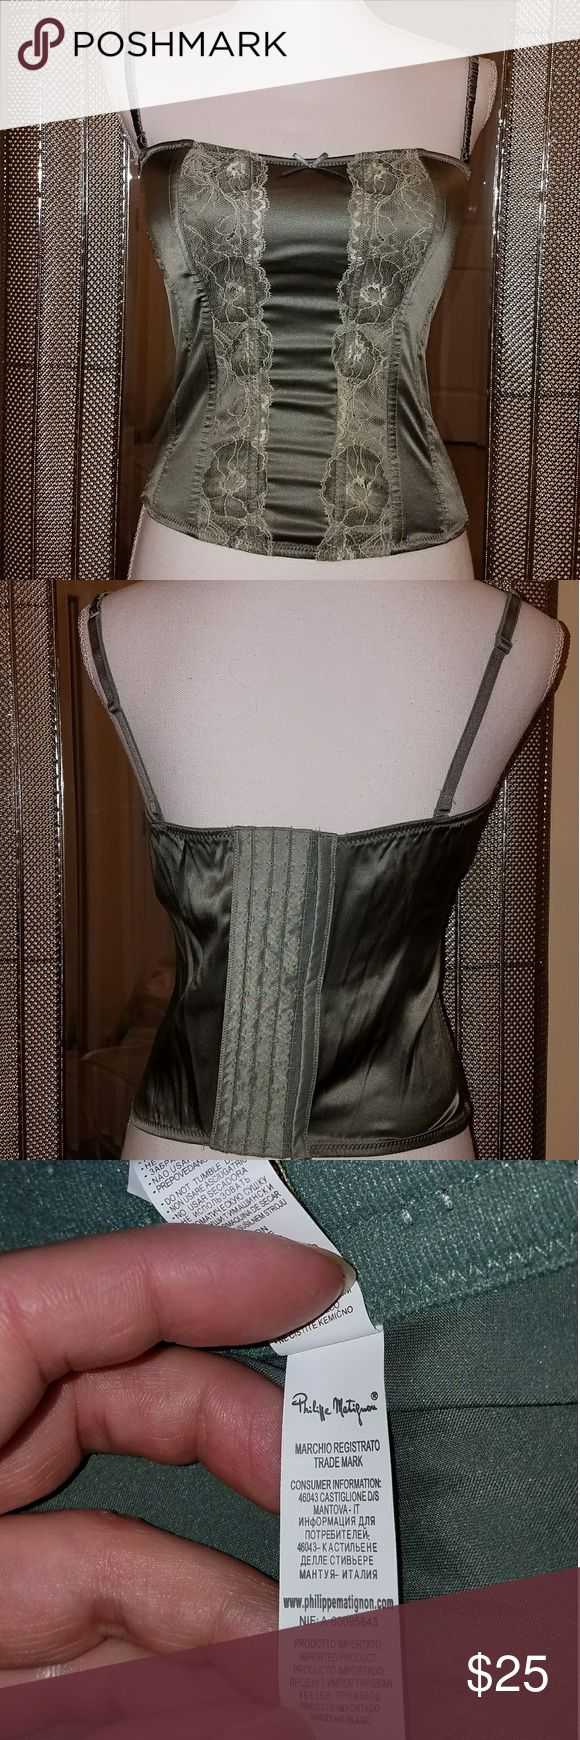 Corset with boning in sage green Corset with boning in sage green nwot. Size 36. Not for someone large chested.  Demi style bra. phillipe matignon Intimates & Sleepwear Shapewear